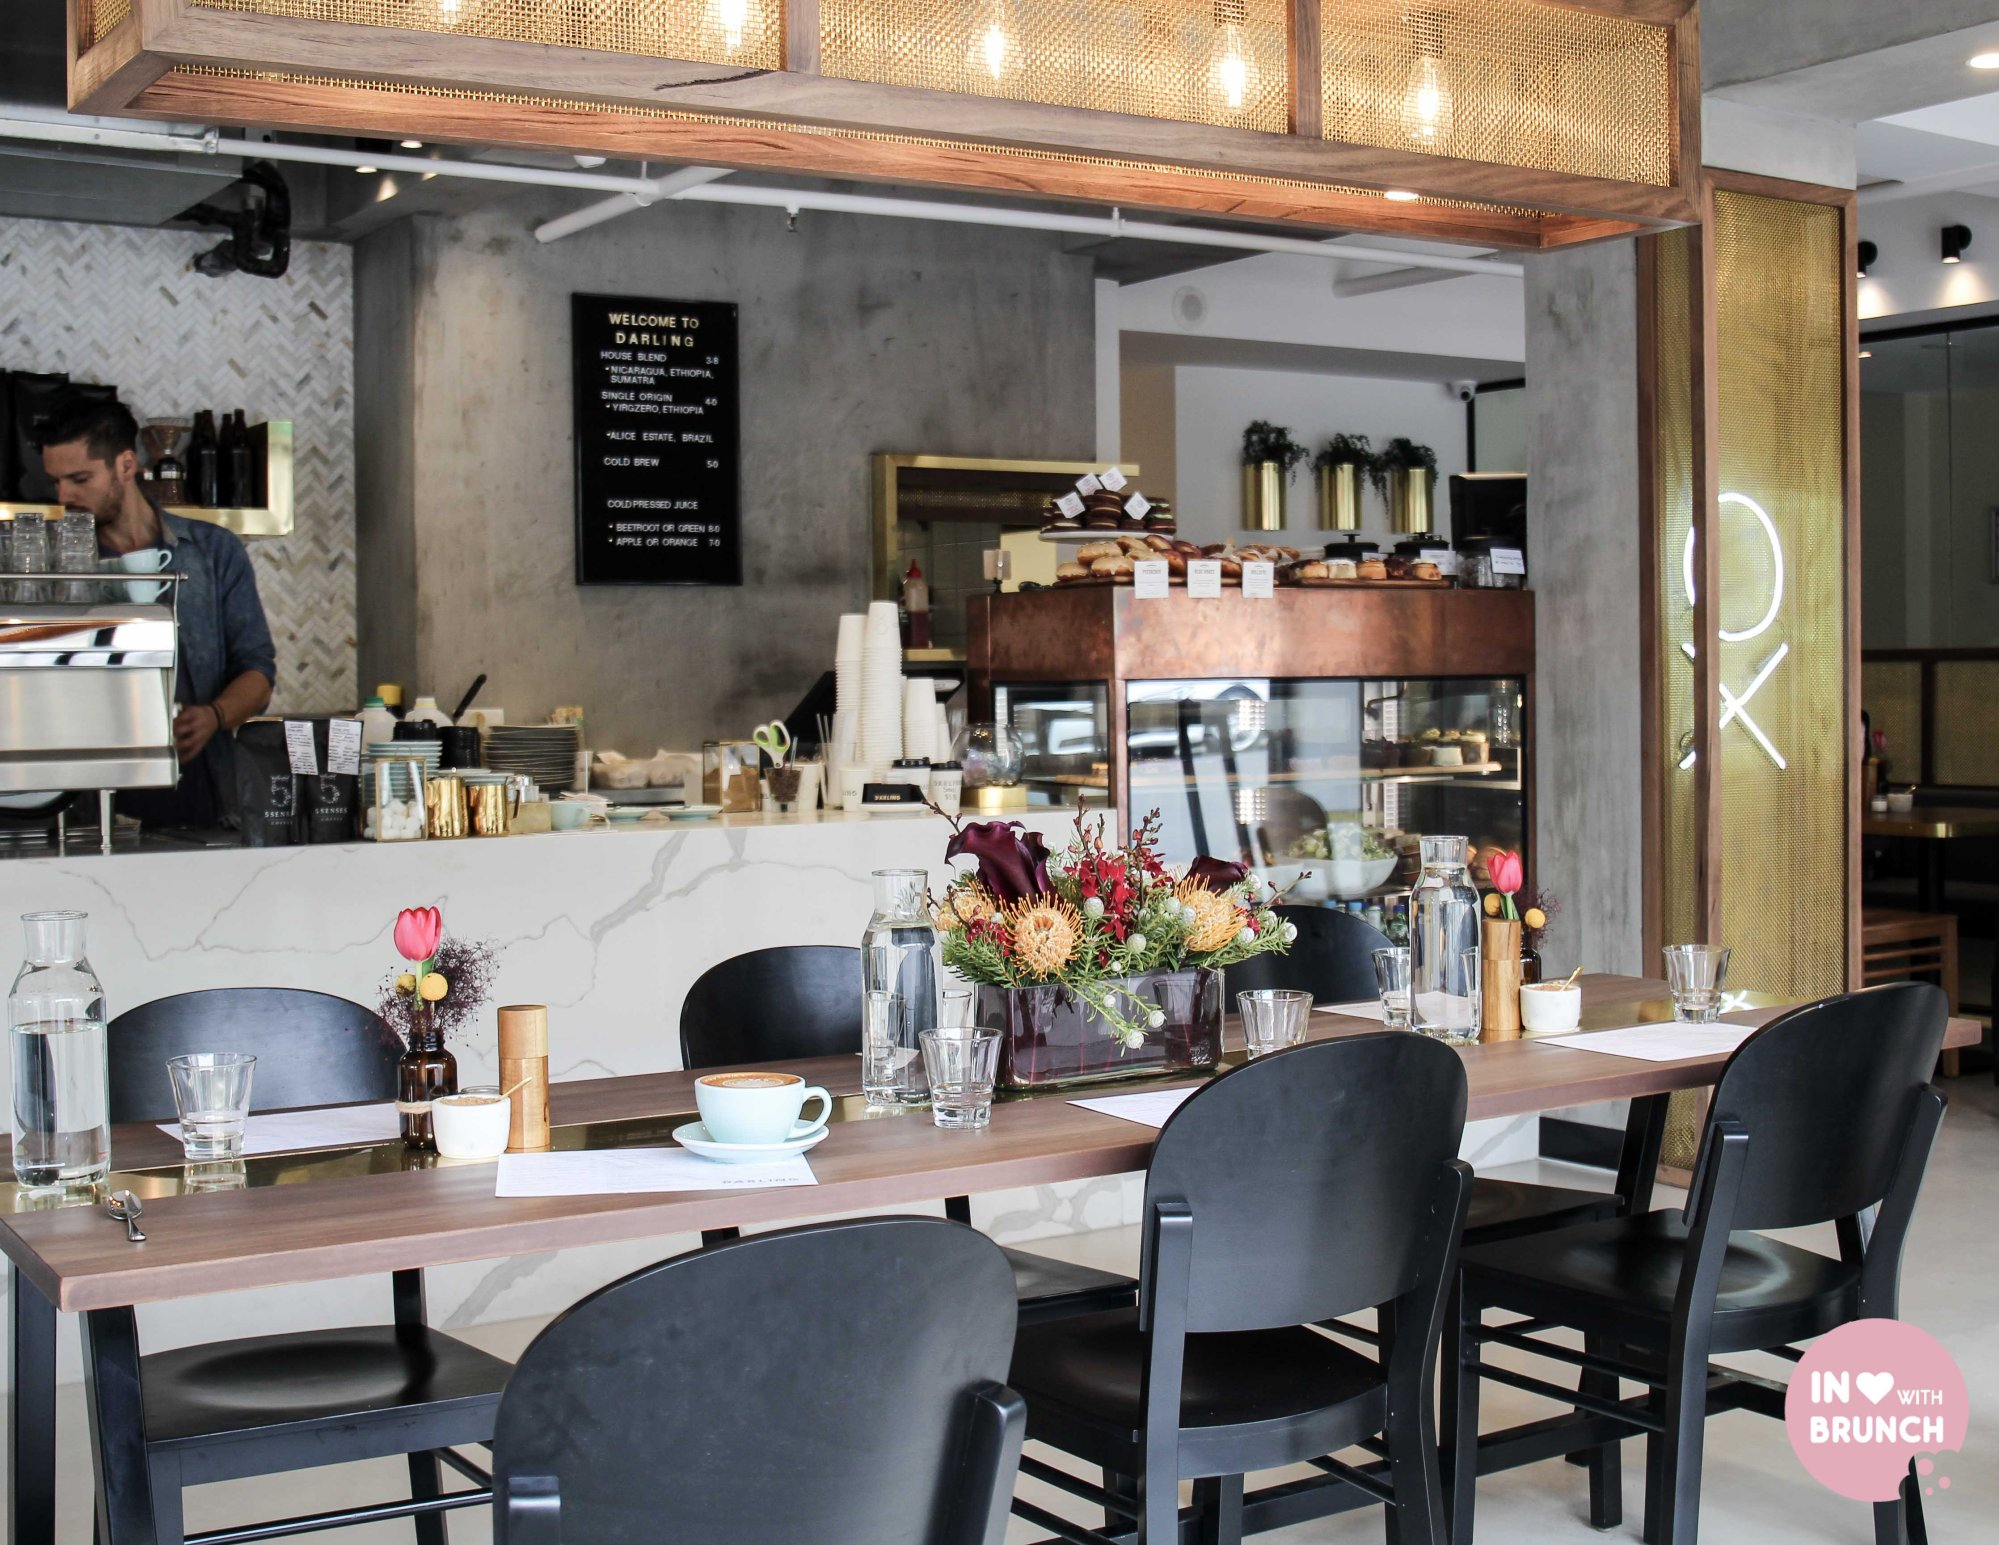 Darling Cafe South Yarra Interior (1 of 1)